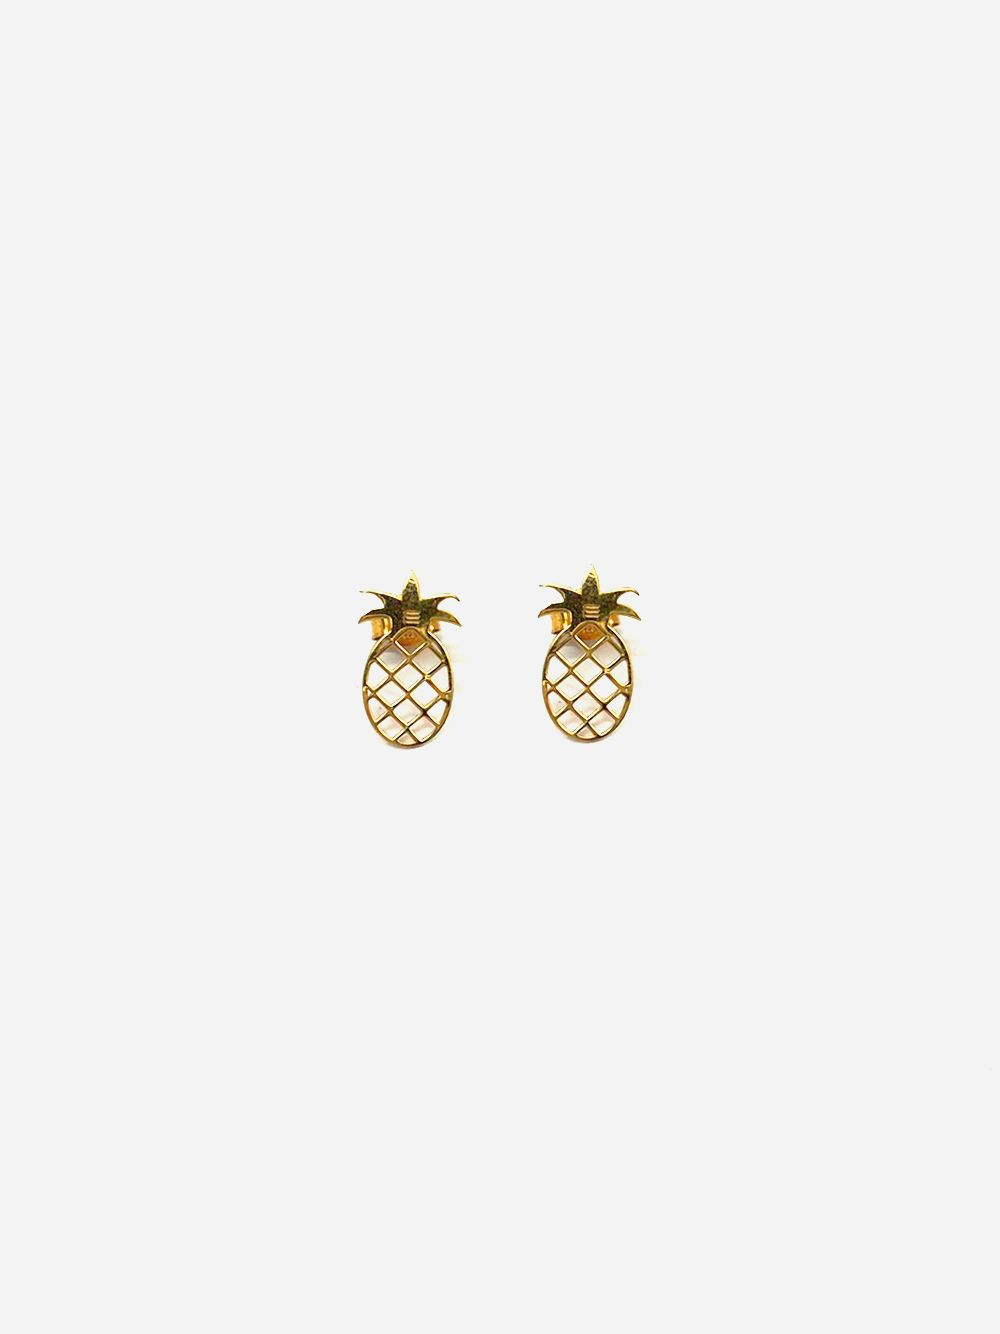 Gold Earrings Ananás | Made to Envy